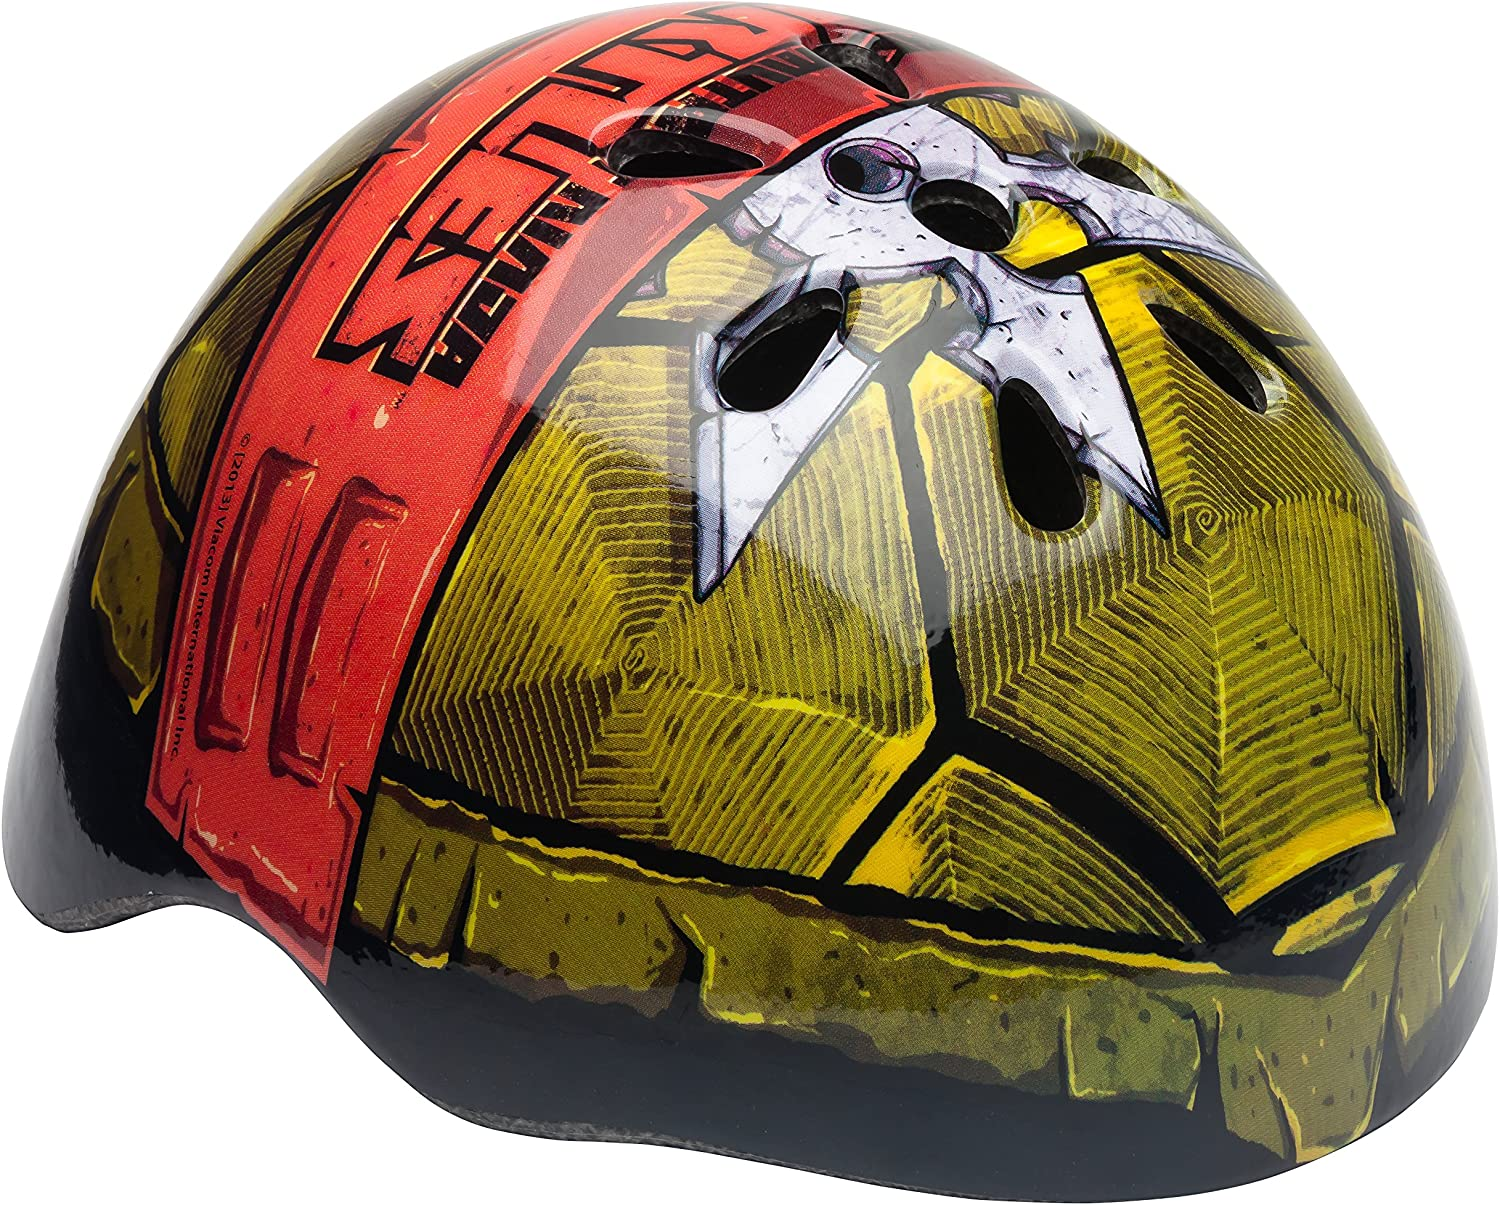 Teenage Mutant Ninja Turtle Helmet